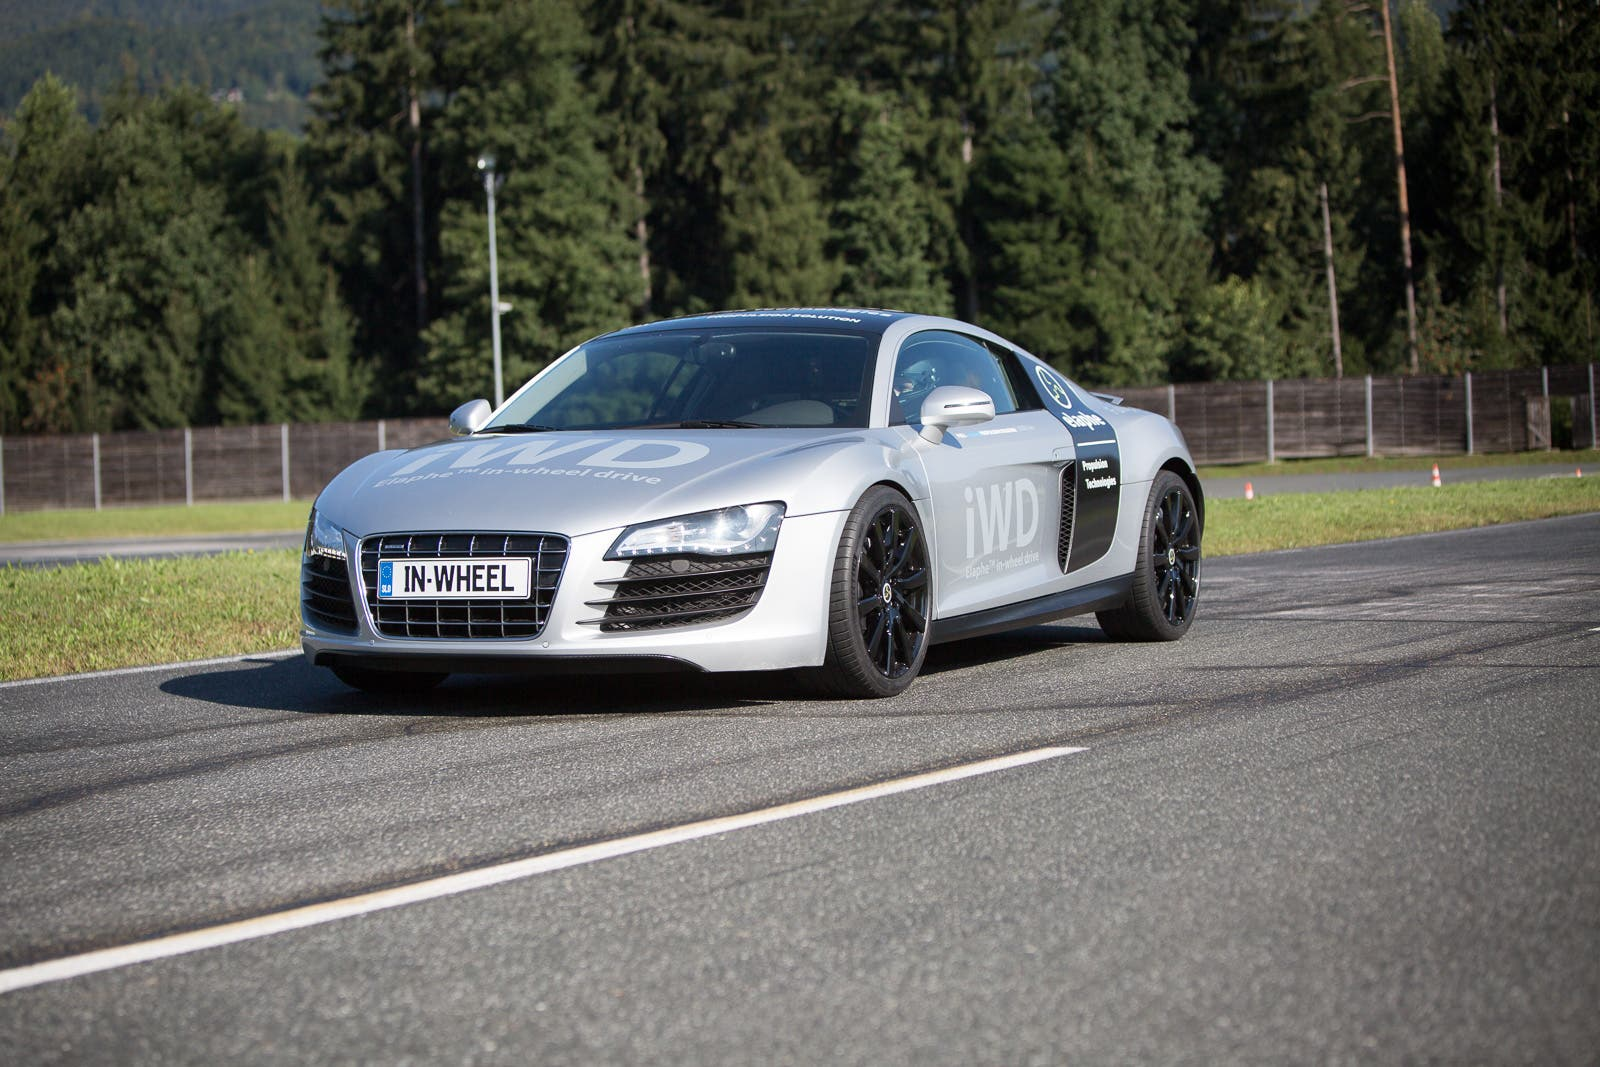 As You Can See In The Photos Below It S Essentially A Stock R8 Including Tailpipes But With Elaphe Wheel Drive Iwd Motor System And